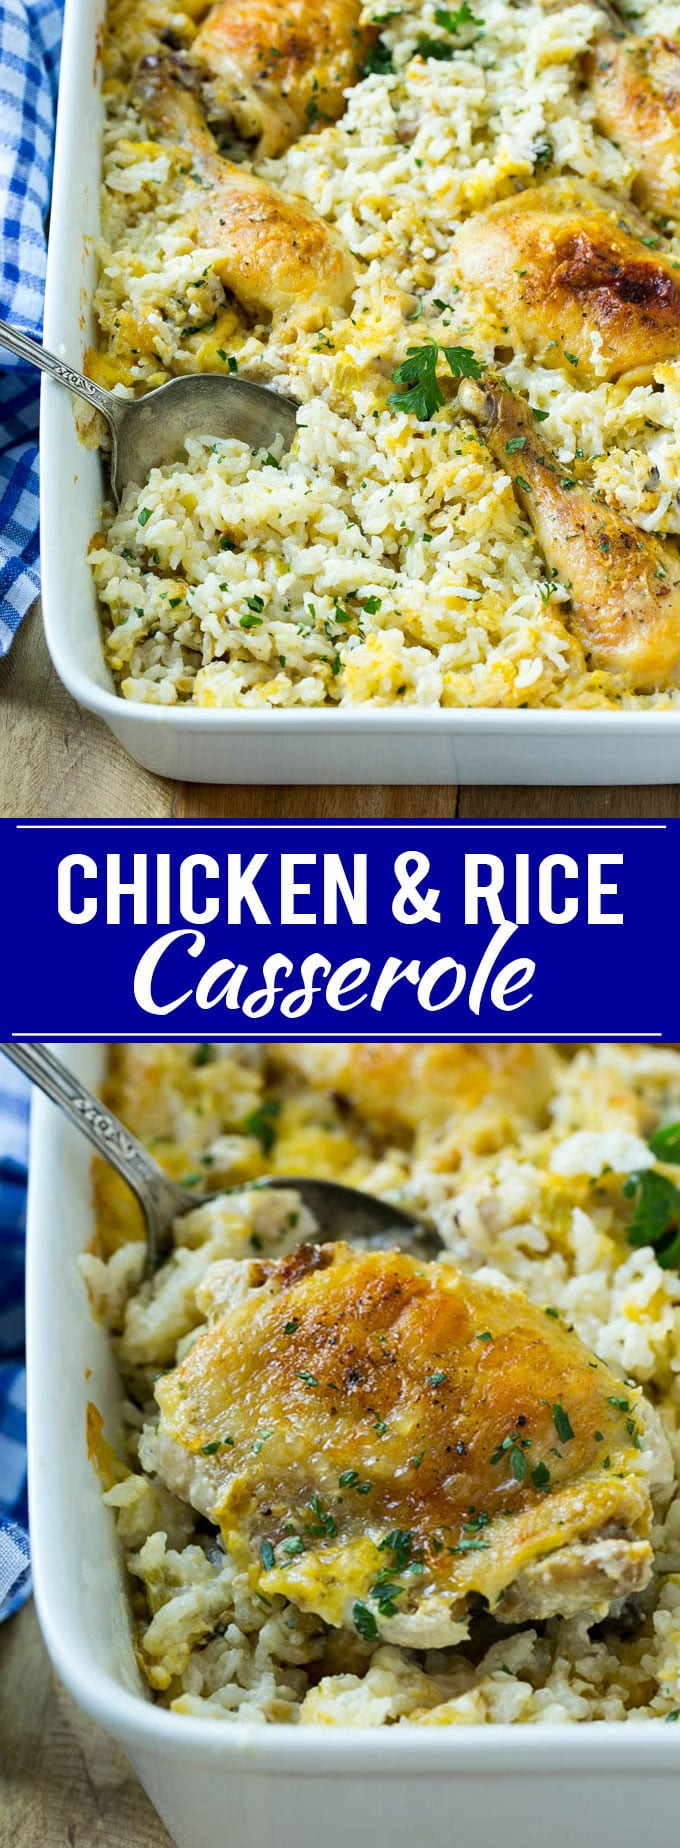 Cream Of Chicken And Rice Casserole  Chicken and Rice Casserole Dinner at the Zoo